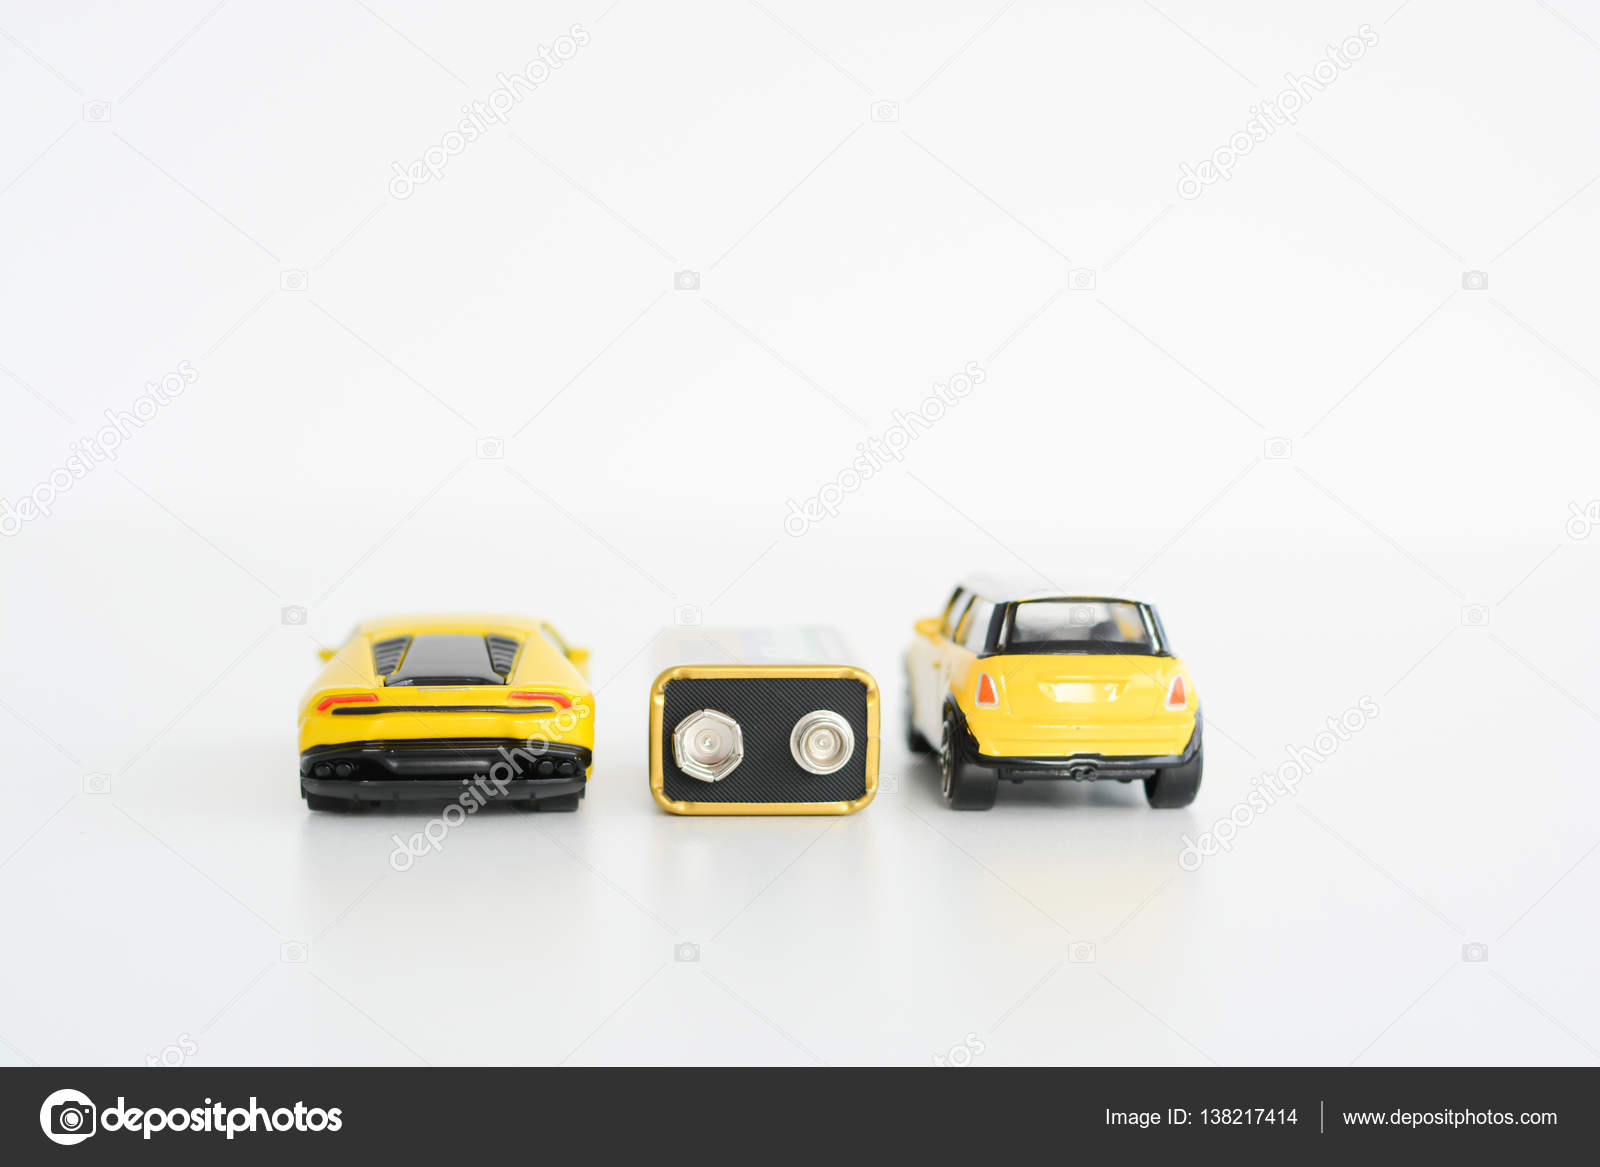 Electric Cars Concept With Toys Vehicles On White Background Stock